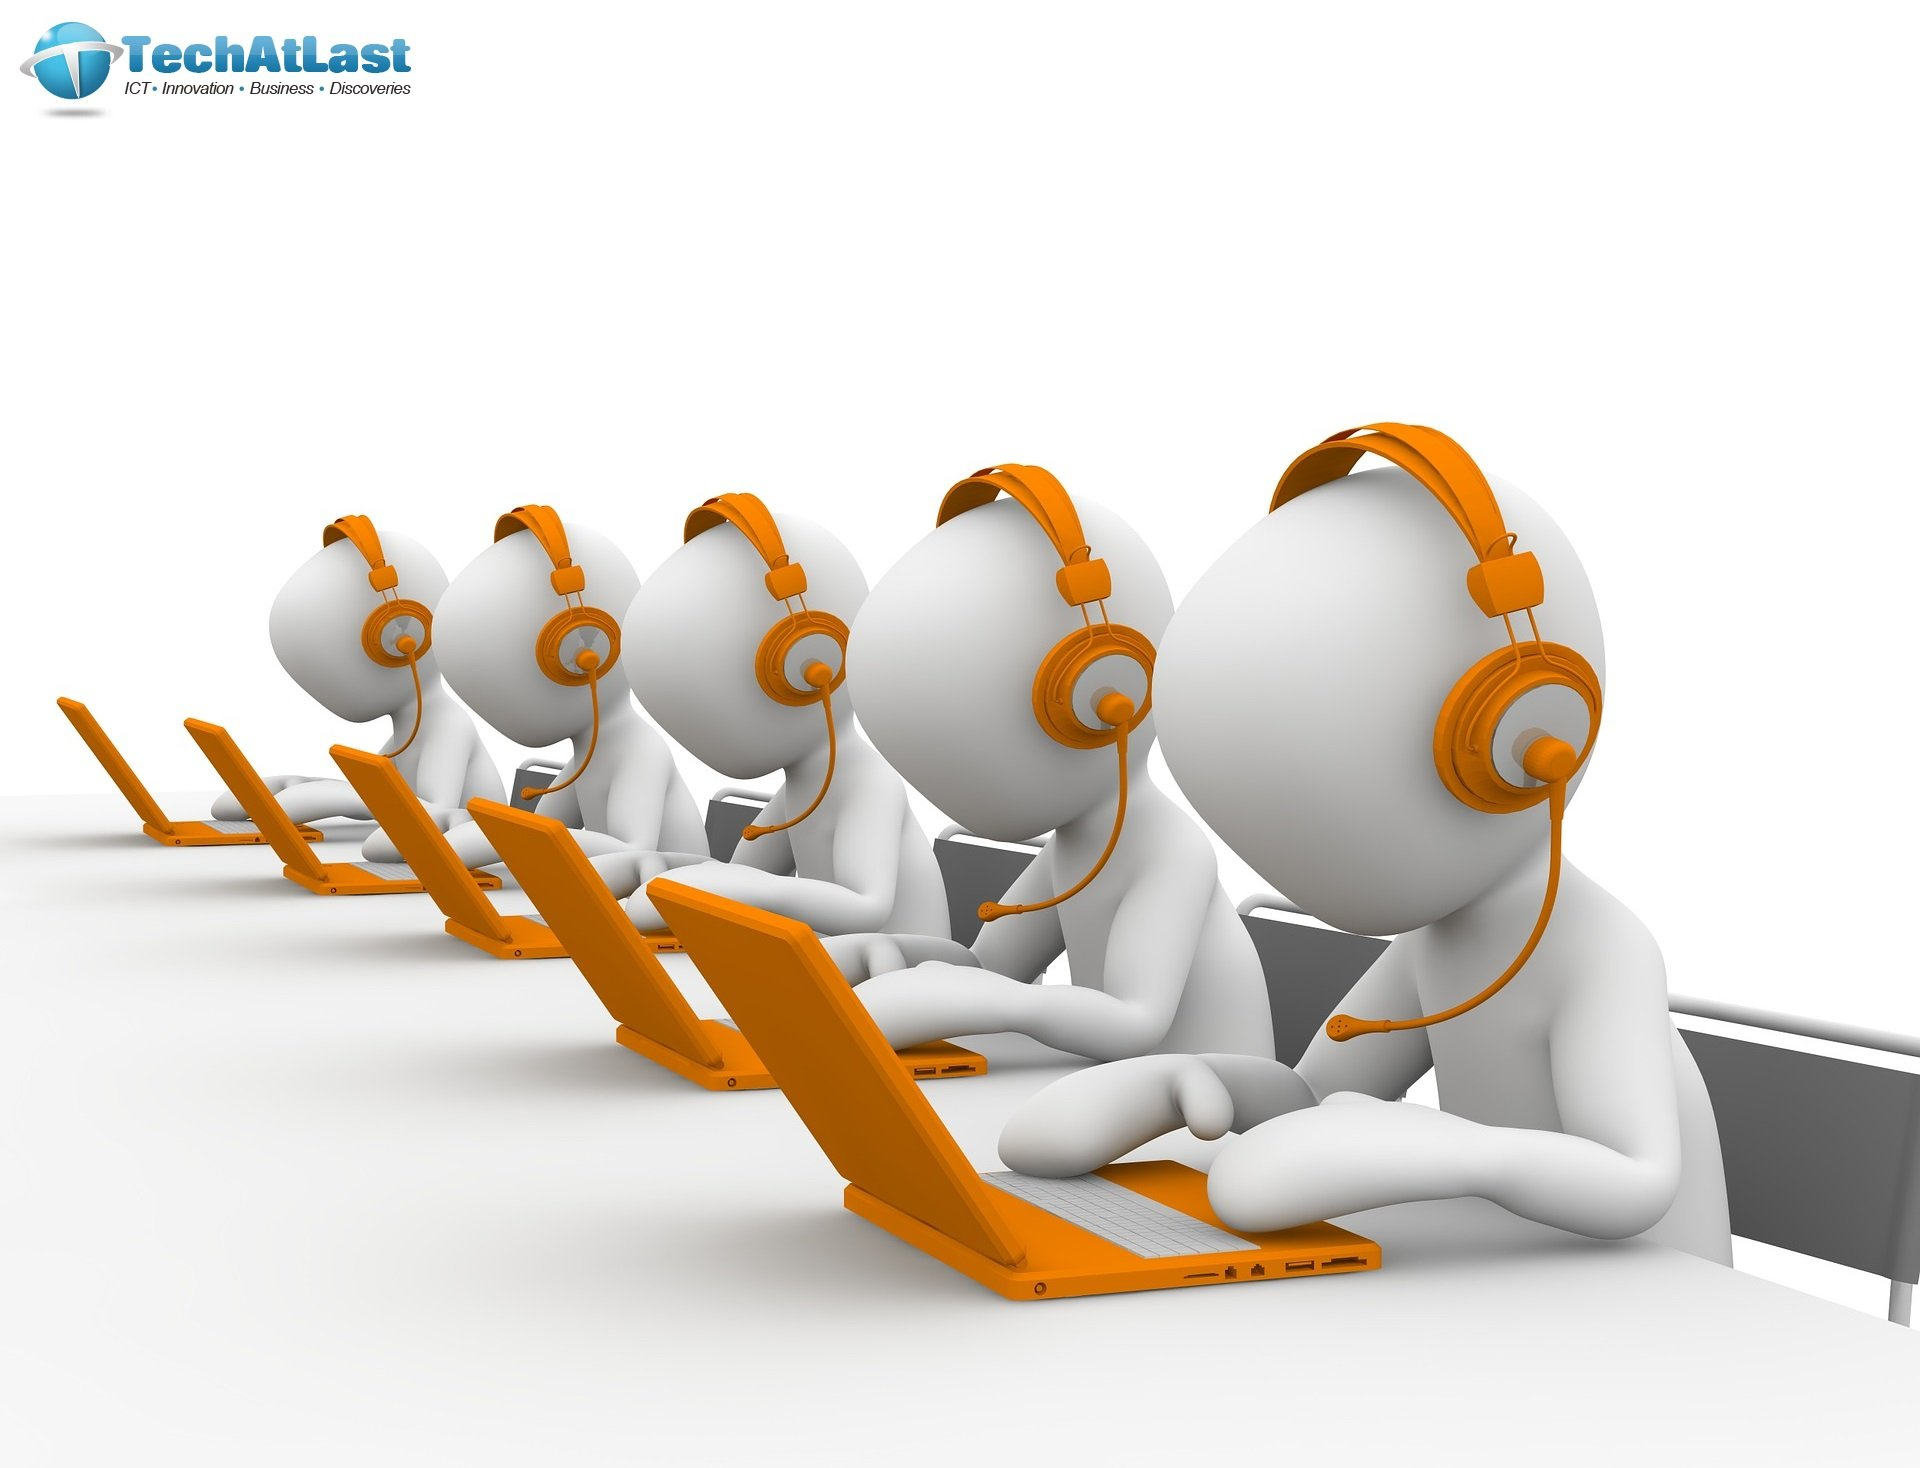 Call Center - Do Cloud-Based Call Services Really Save Money